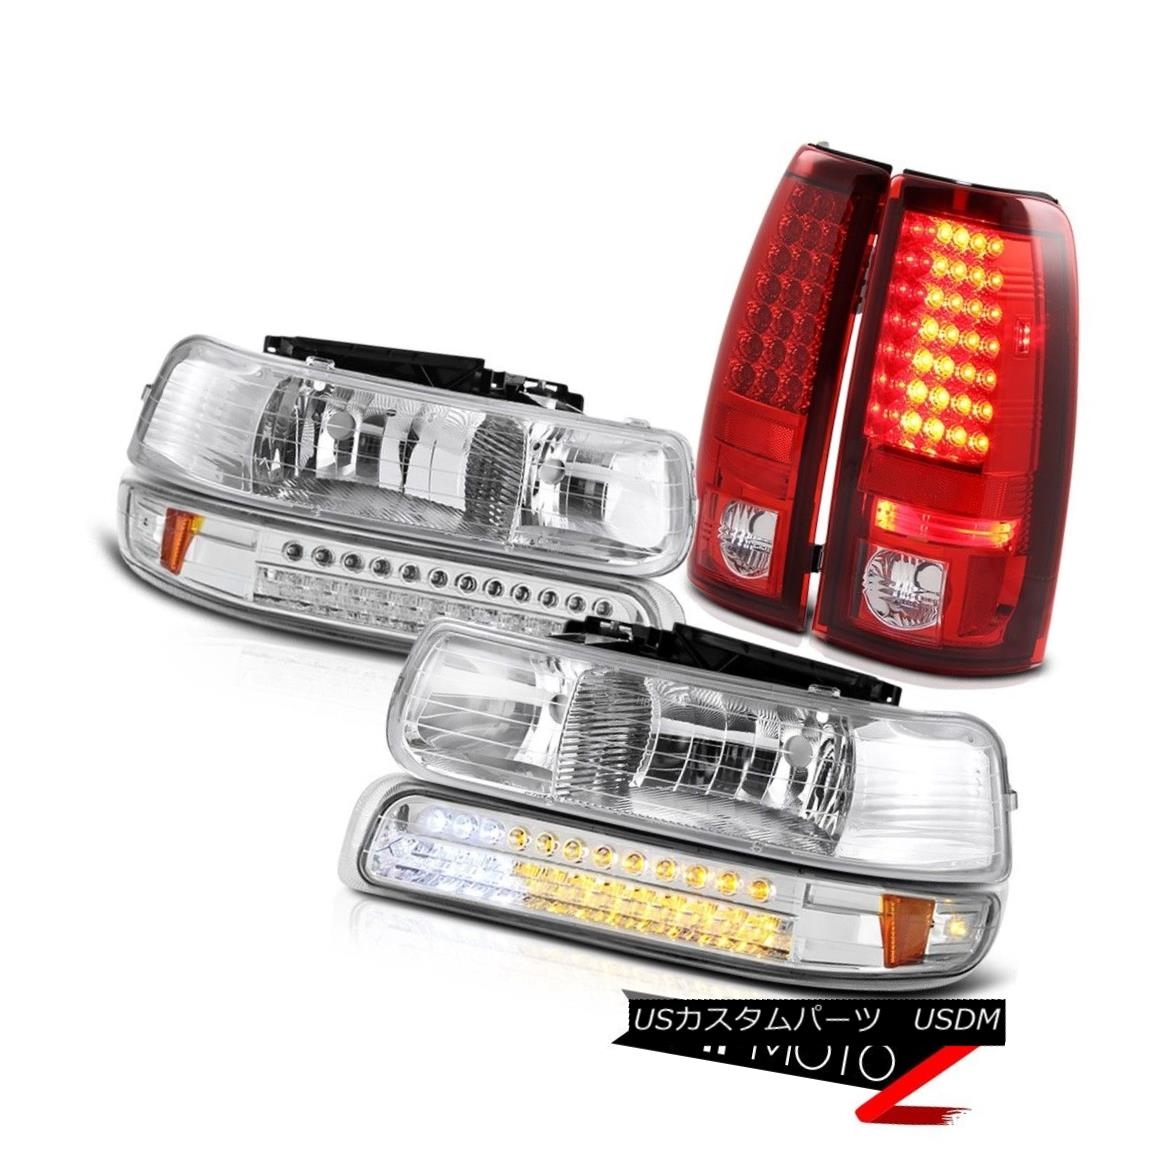 テールライト 99 00 01 02 Silverado 4.3L V8 Front Headlights Signal DRL Red LED Tail Light 99 00 01 02 Silverado 4.3L V8フロントヘッドライト信号DRL赤色LEDテールライト